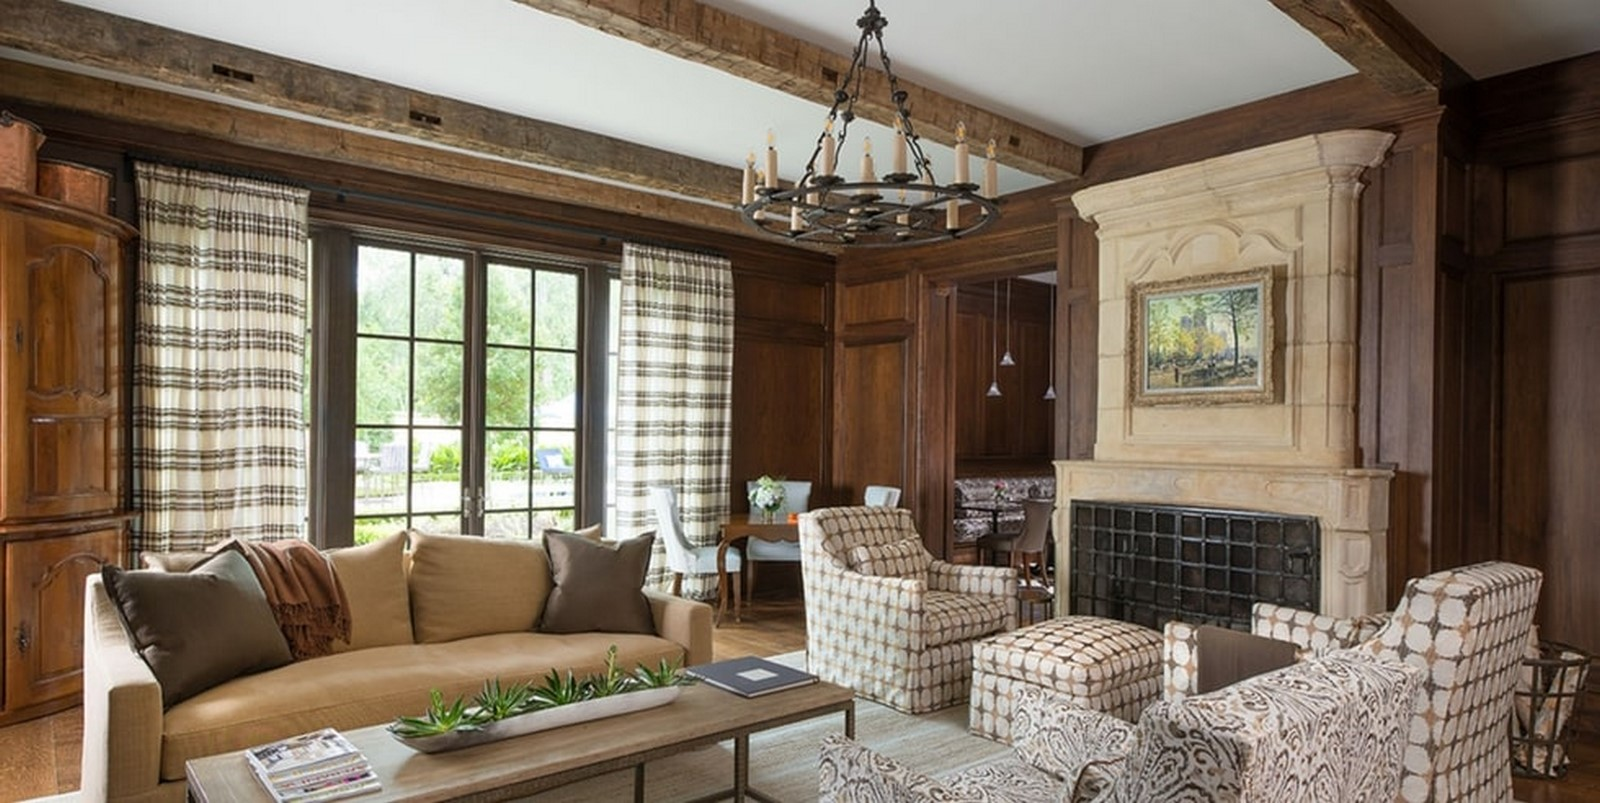 30 Examples of Rustic interiors for living rooms - Sheet7